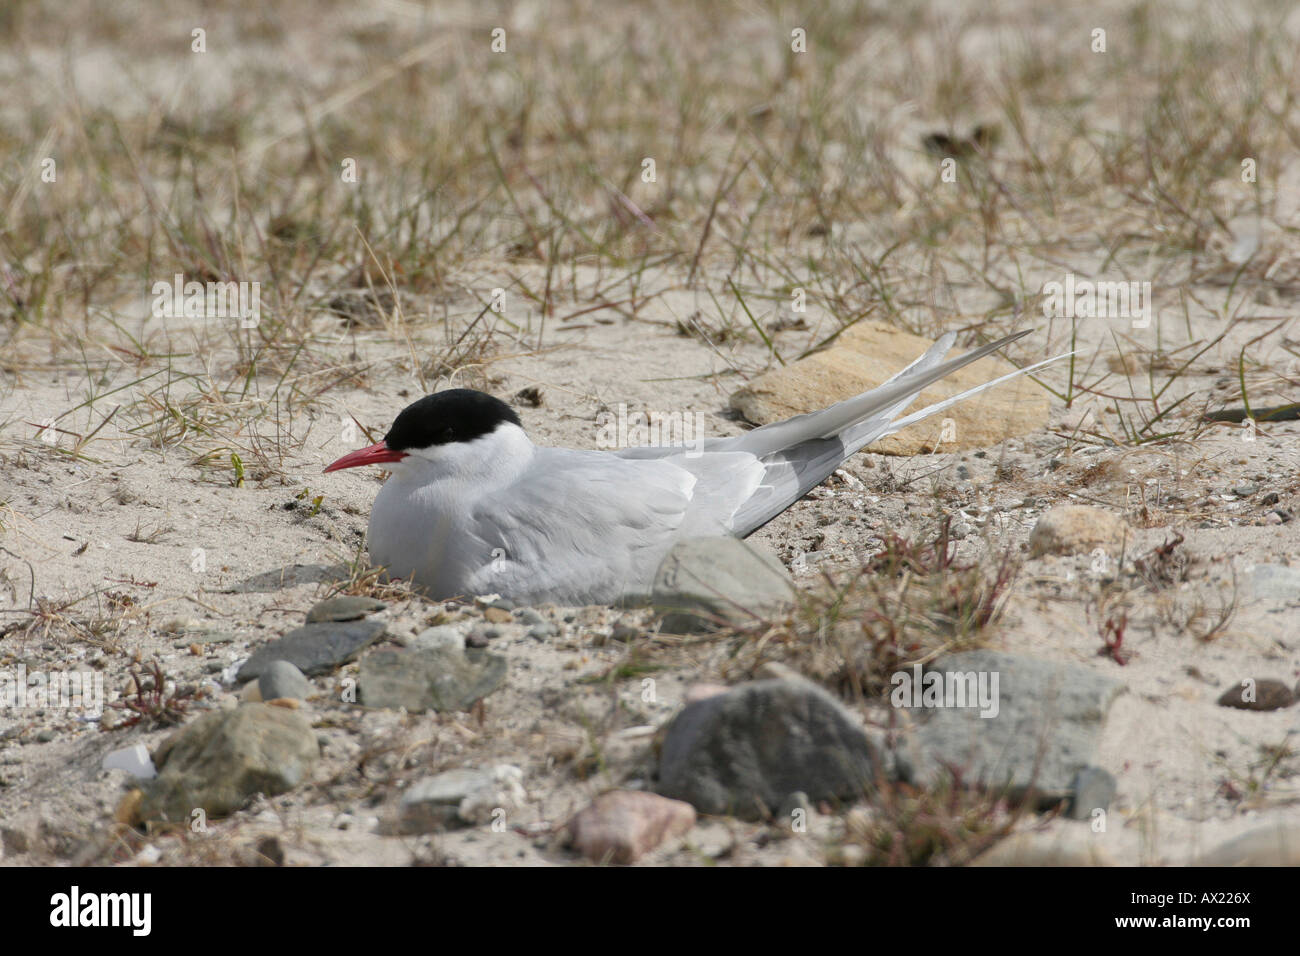 Arctic Tern (Sterna paradisaea), northern Norway, Europe - Stock Image